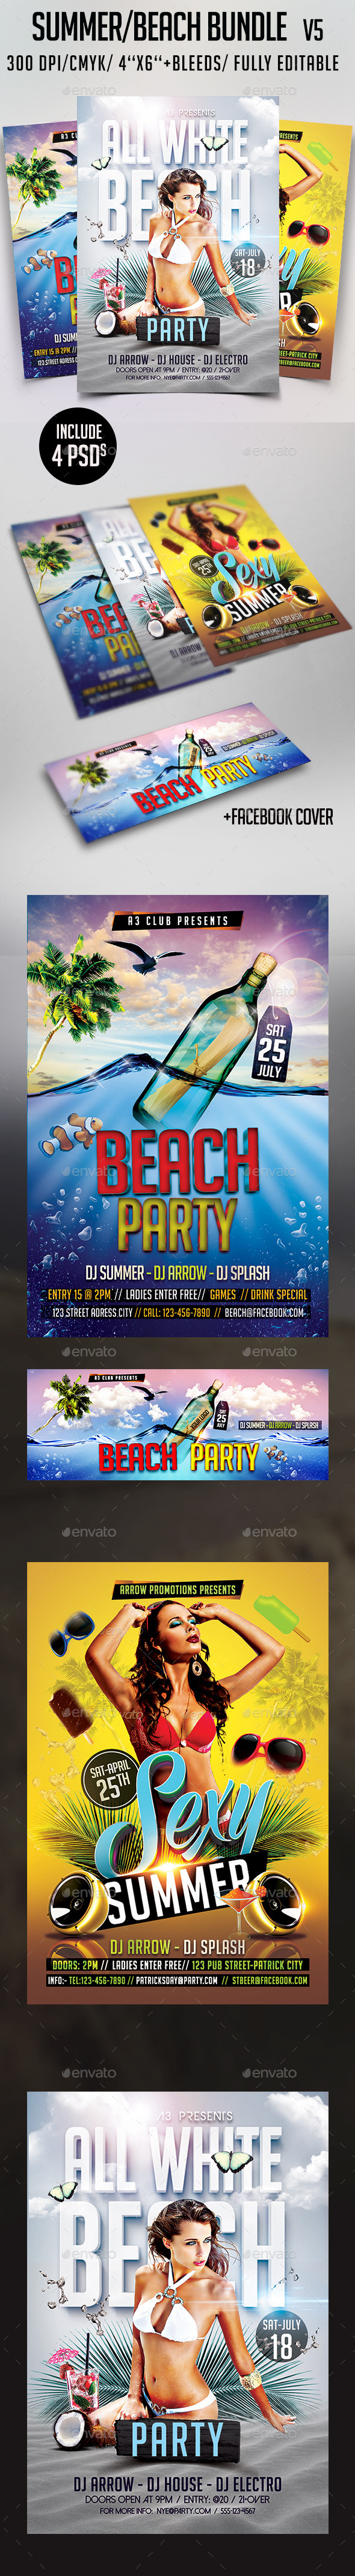 Summer Beach Party Bundle V6 - Clubs & Parties Events